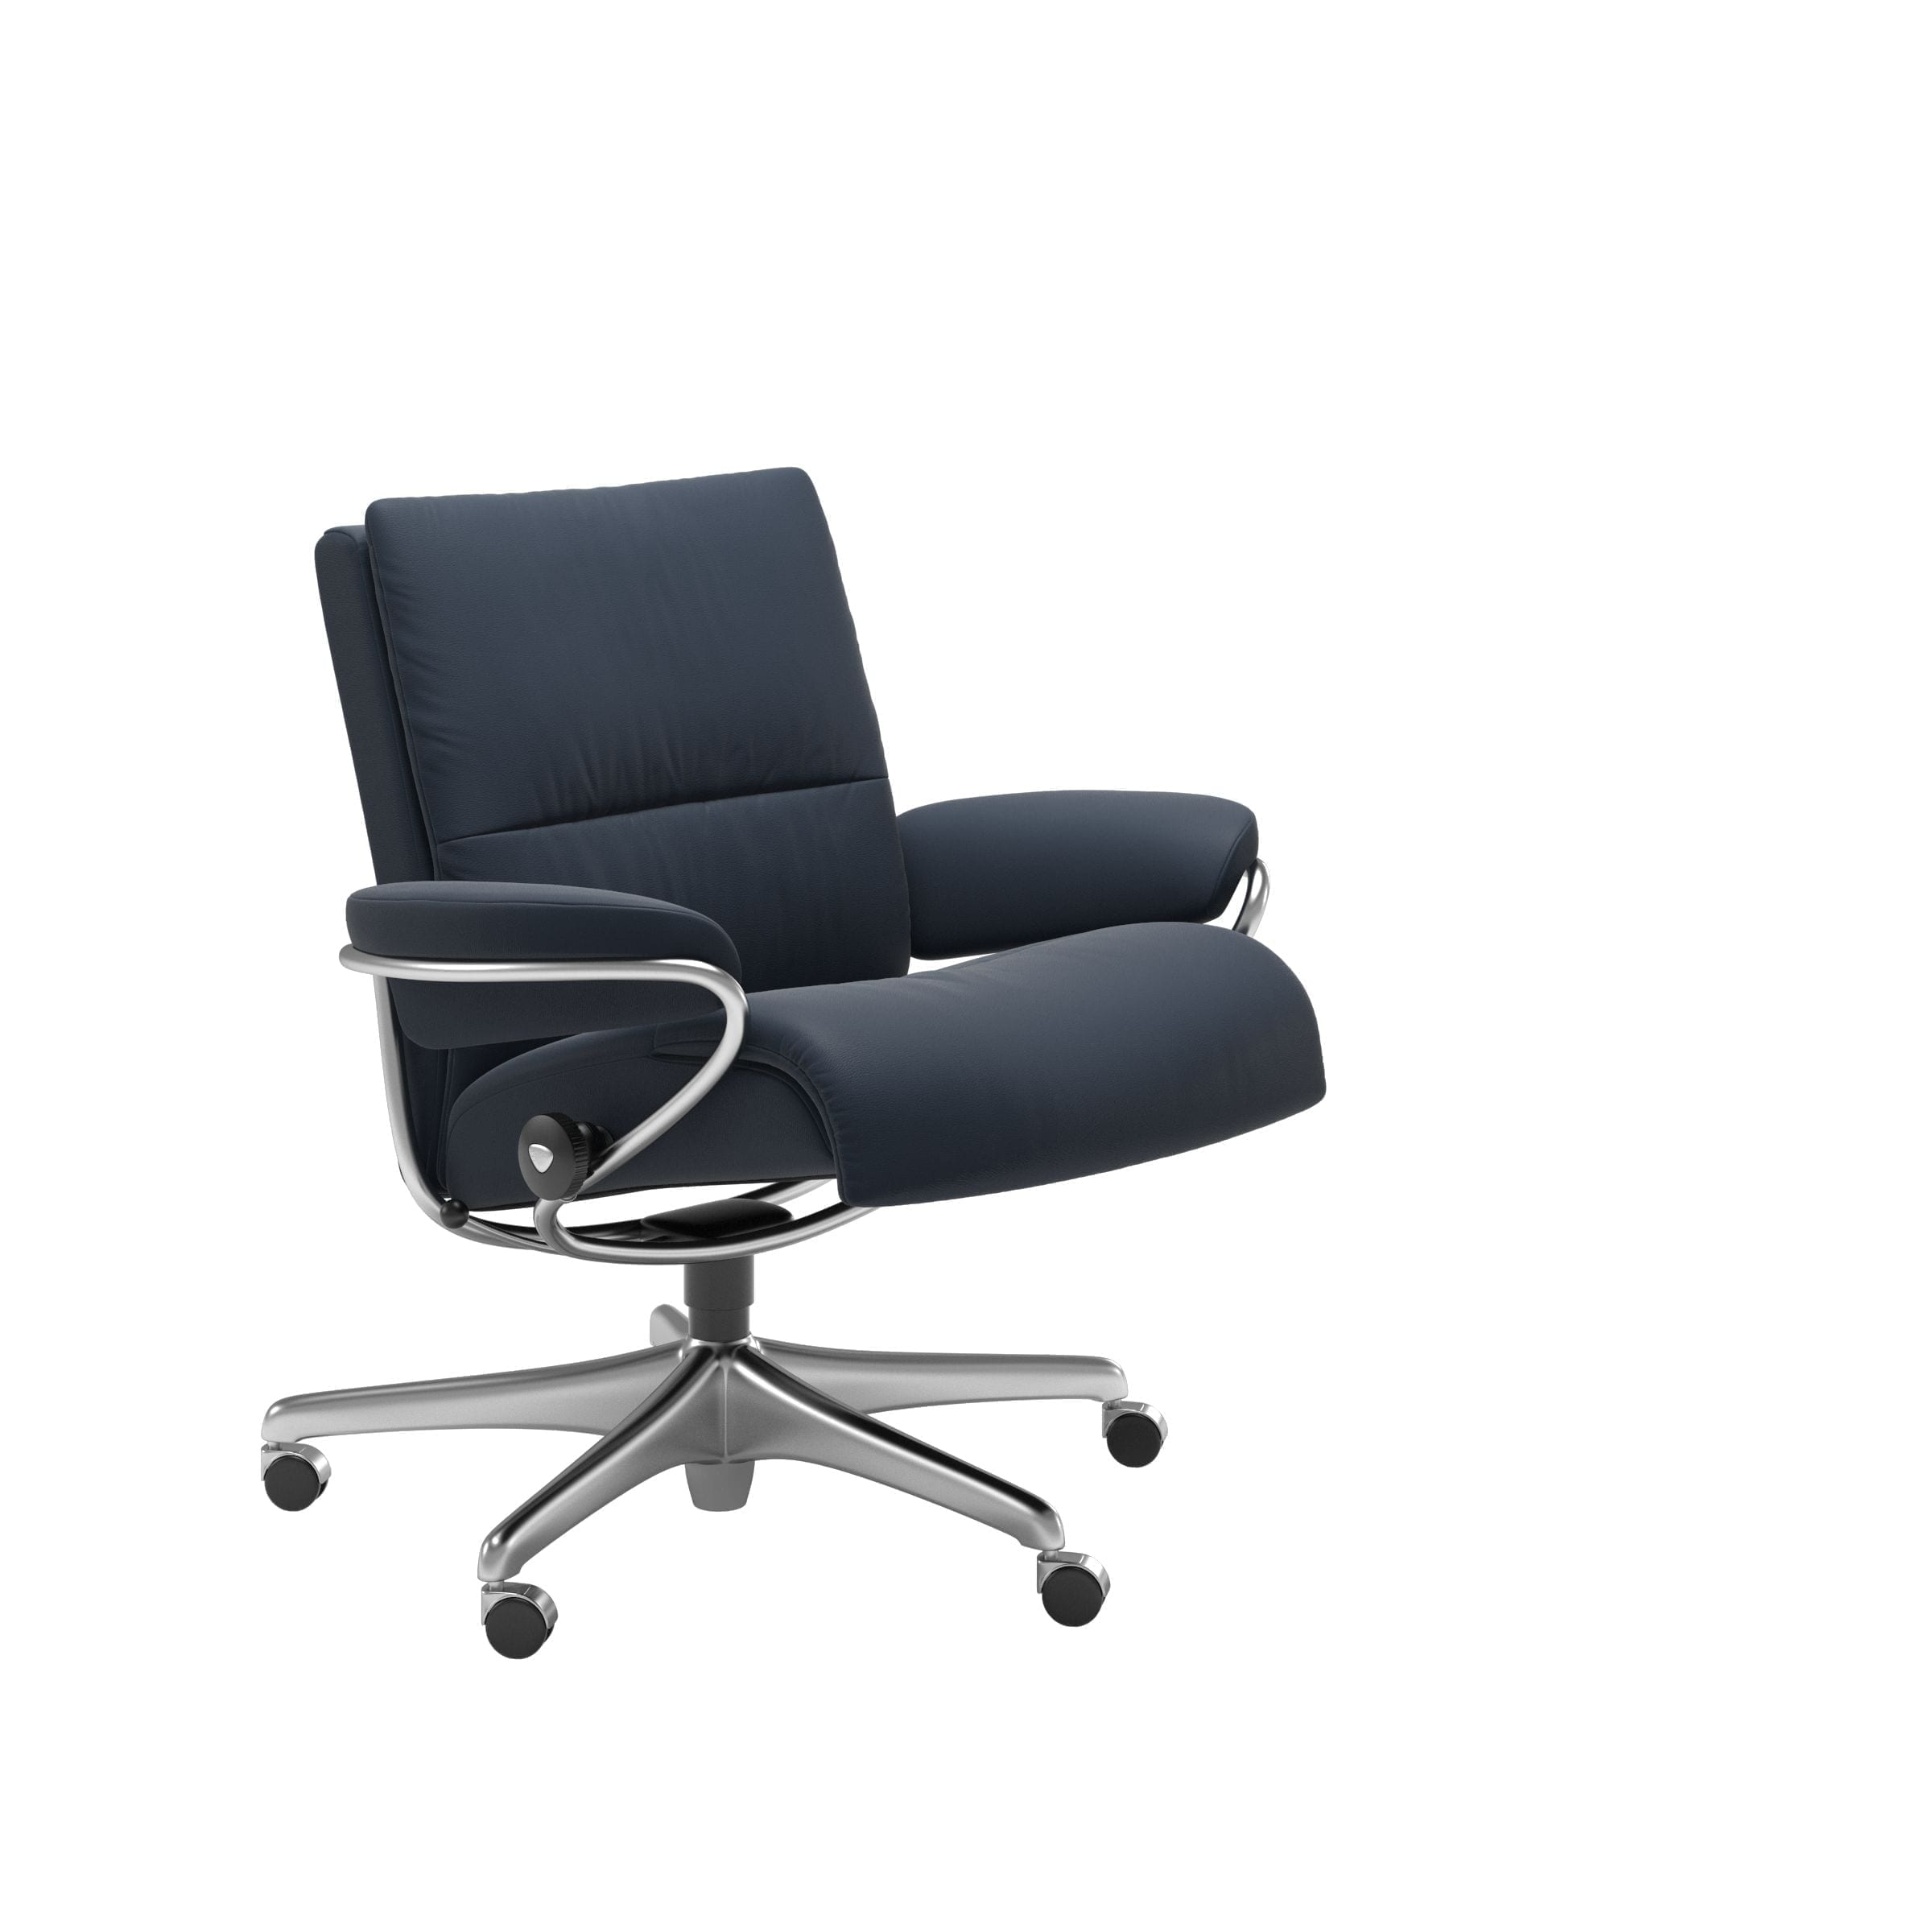 Tokyo Office Low Back Stressless Chair